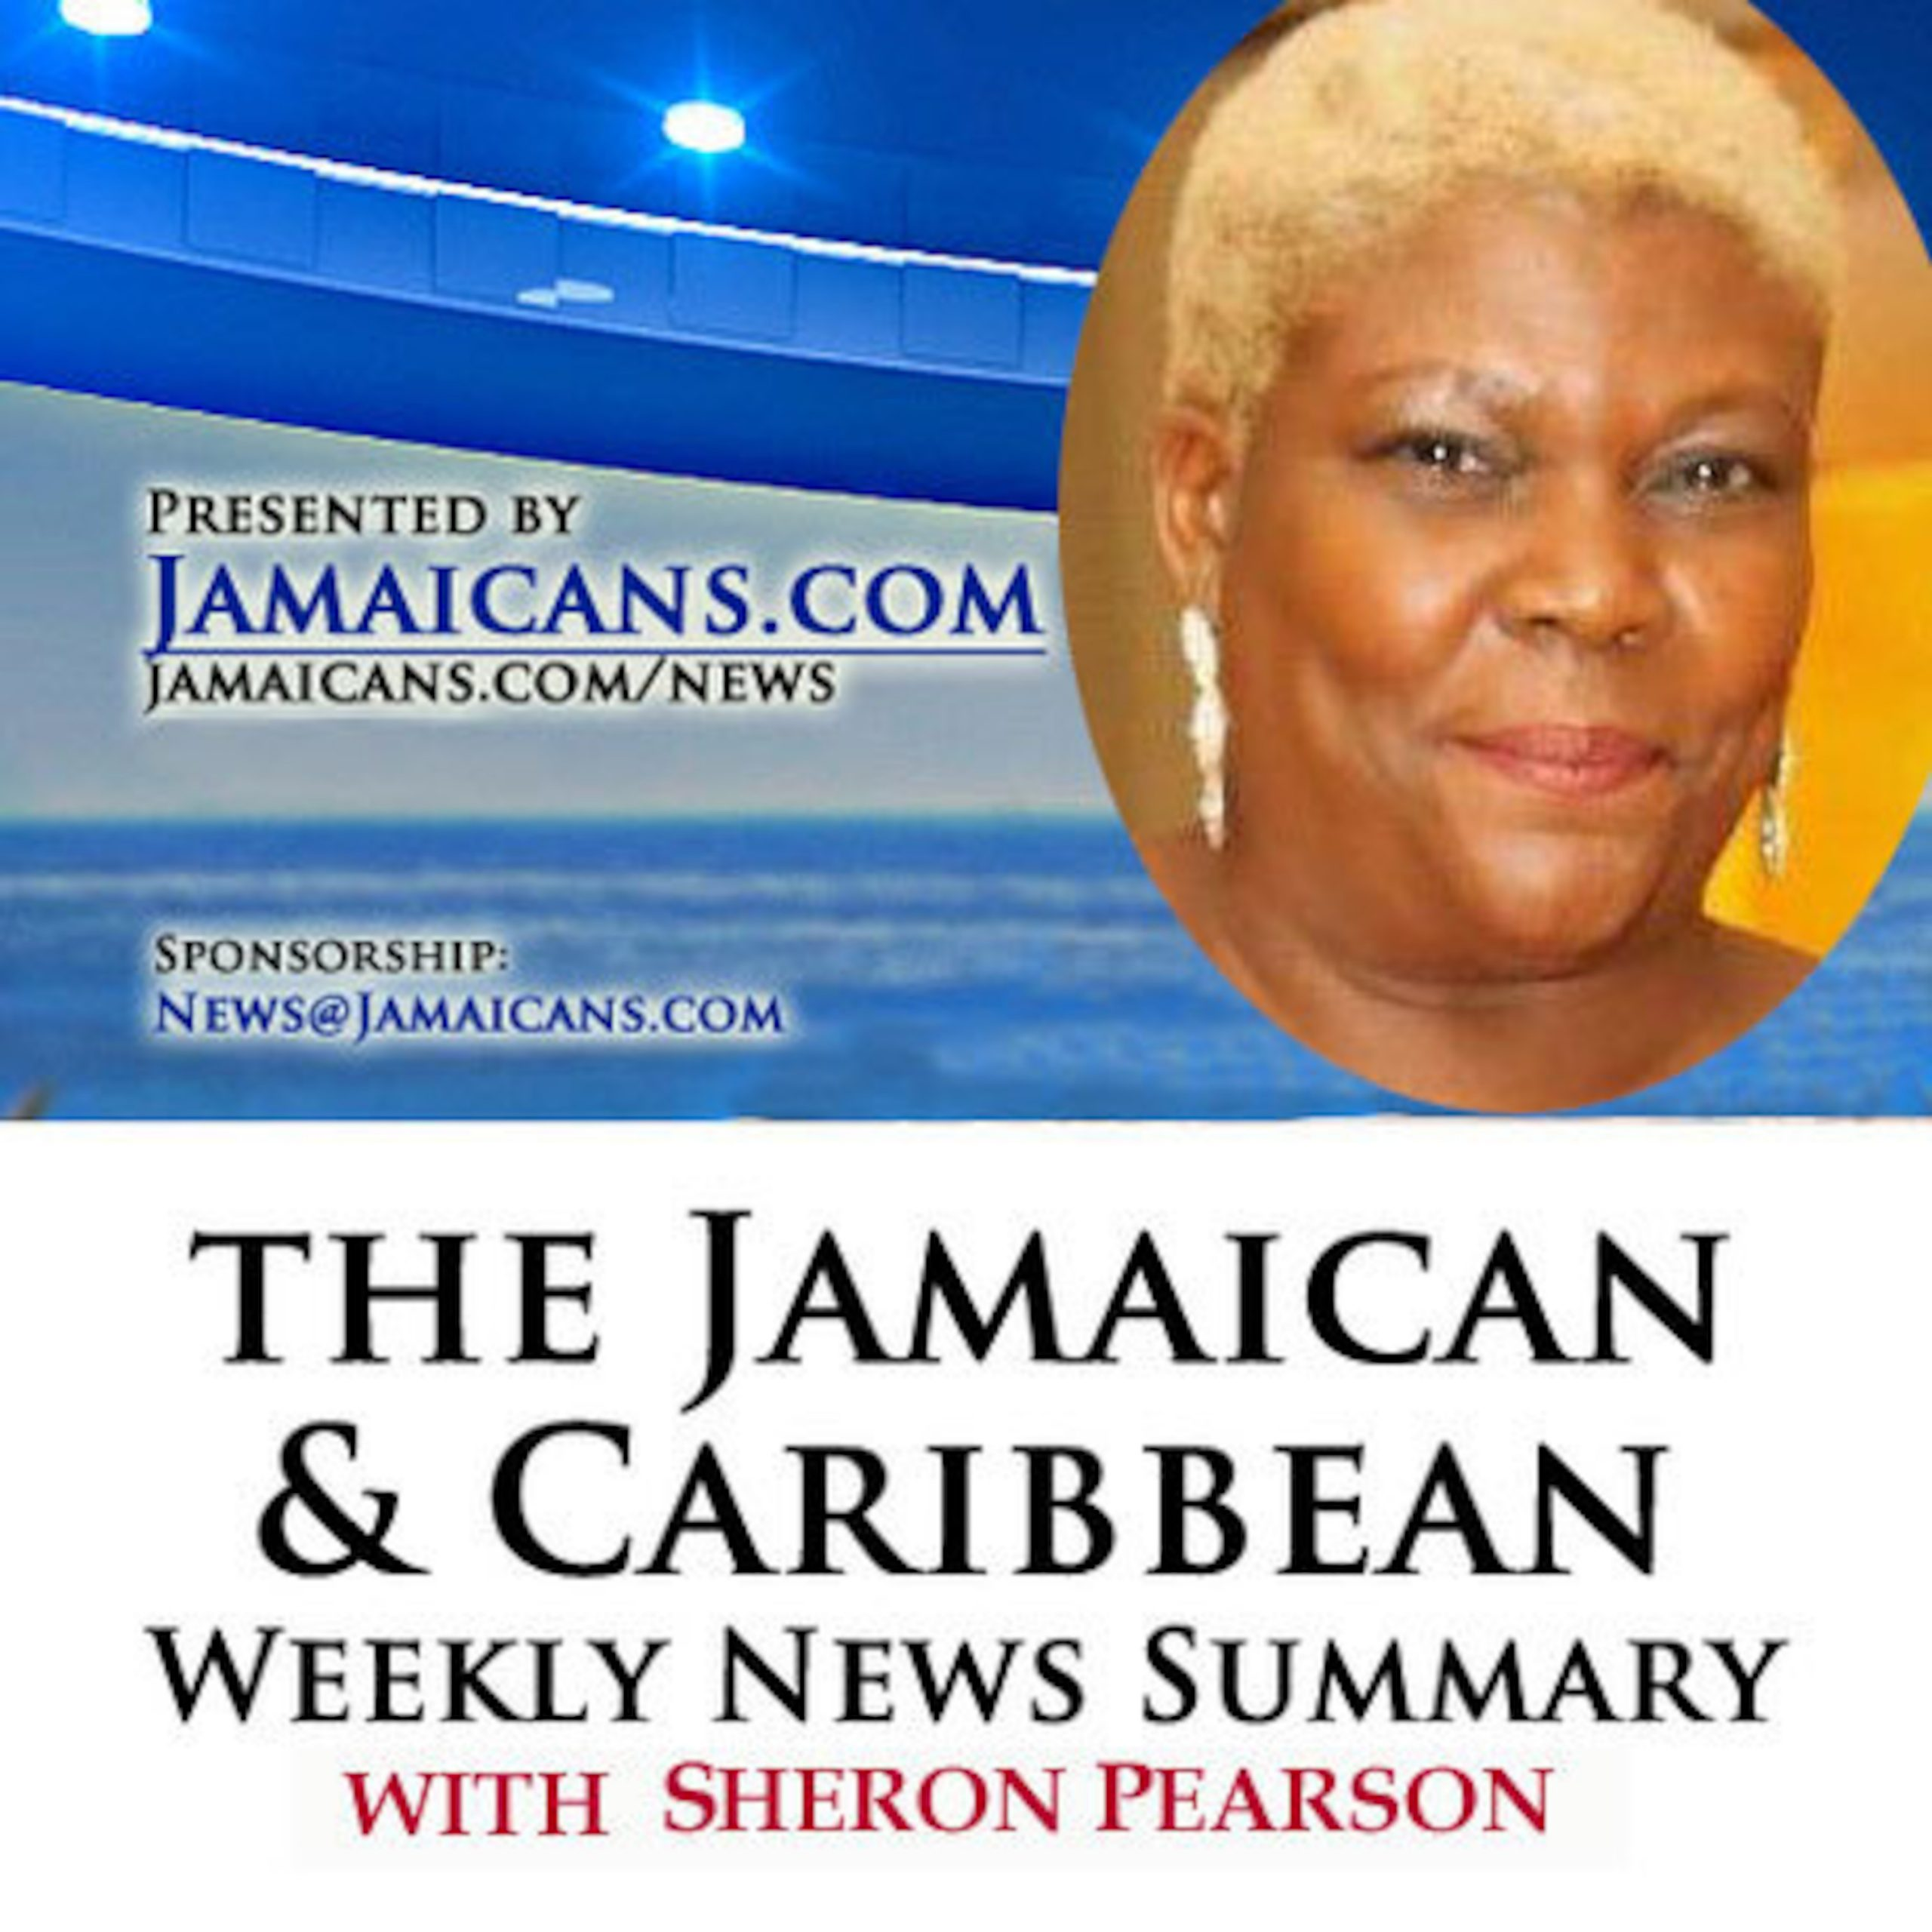 Listen to the Podcast of The Jamaica & Caribbean Weekly News Summary for the week ending April 3, 2020